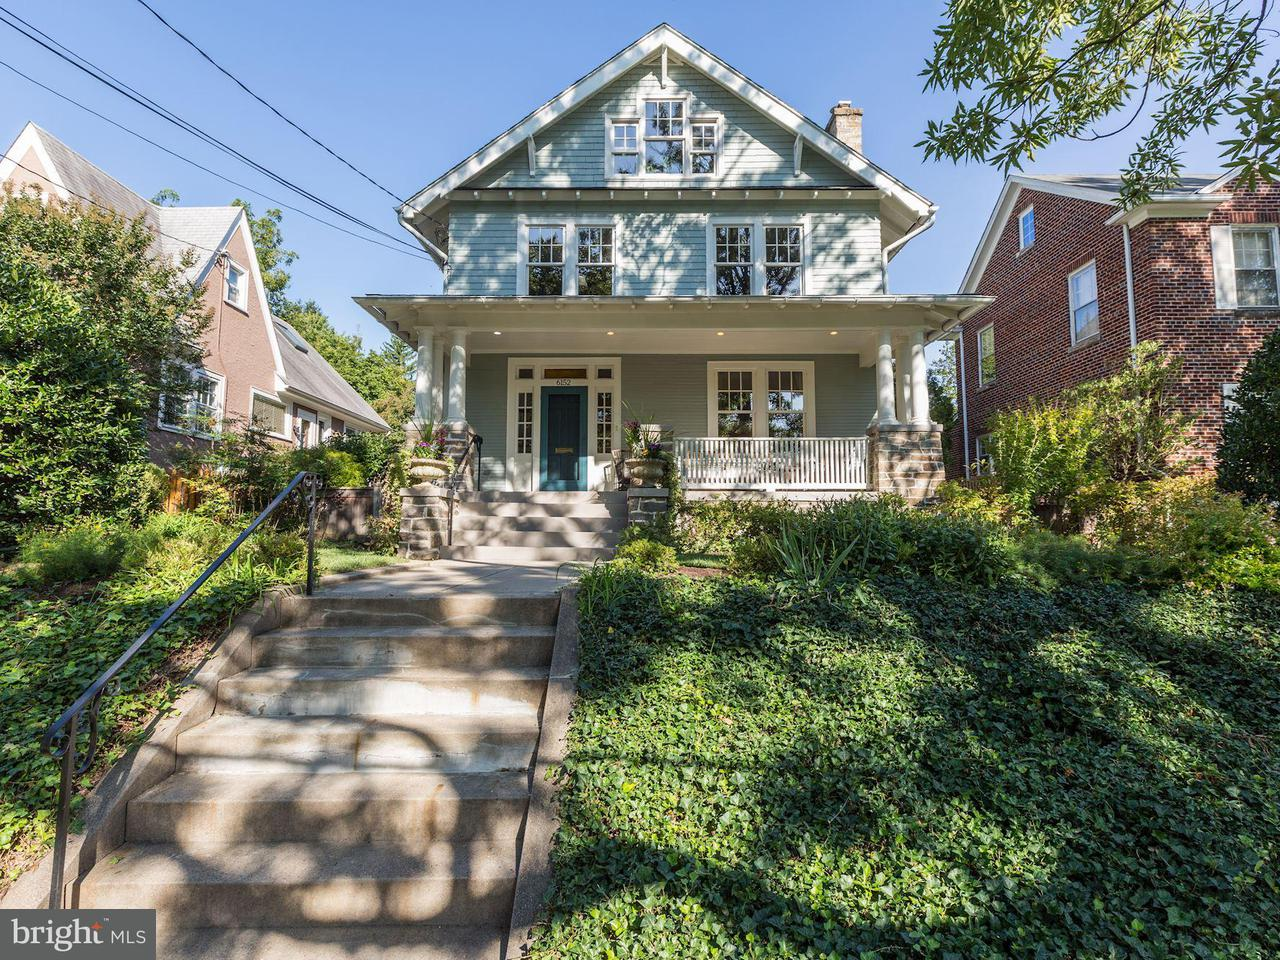 Single Family Home for Sale at 6152 31ST ST NW 6152 31ST ST NW Washington, District Of Columbia 20015 United States